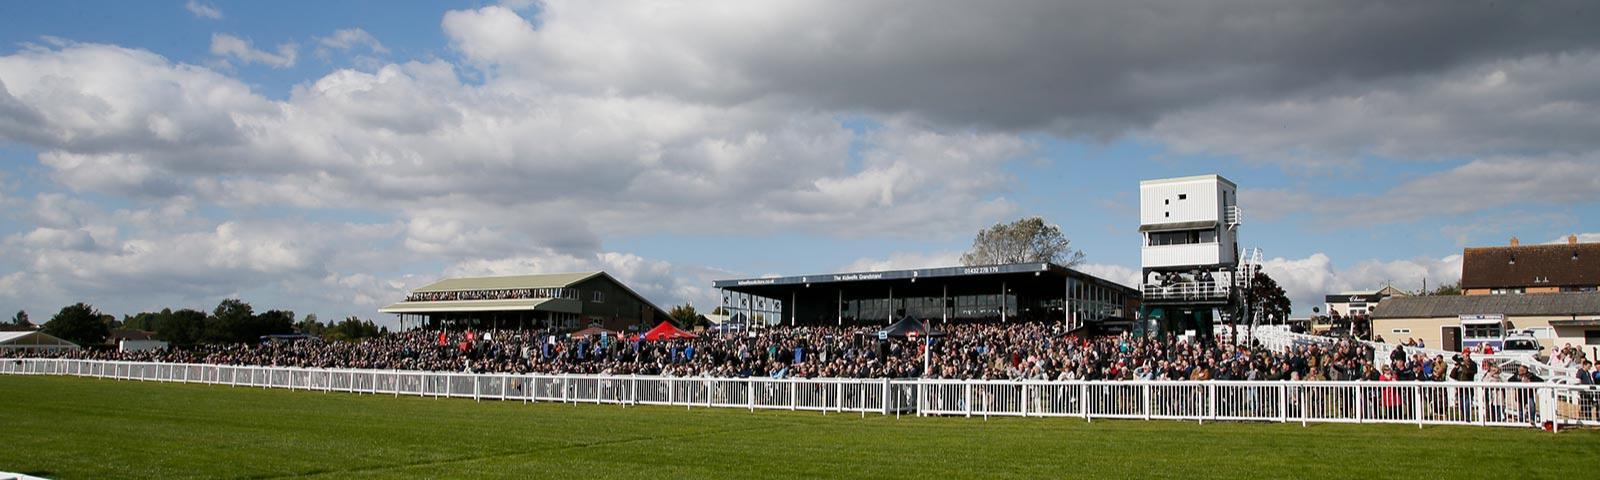 Crowds watching racing with the main Hereford Racecourse grandstand in the background.